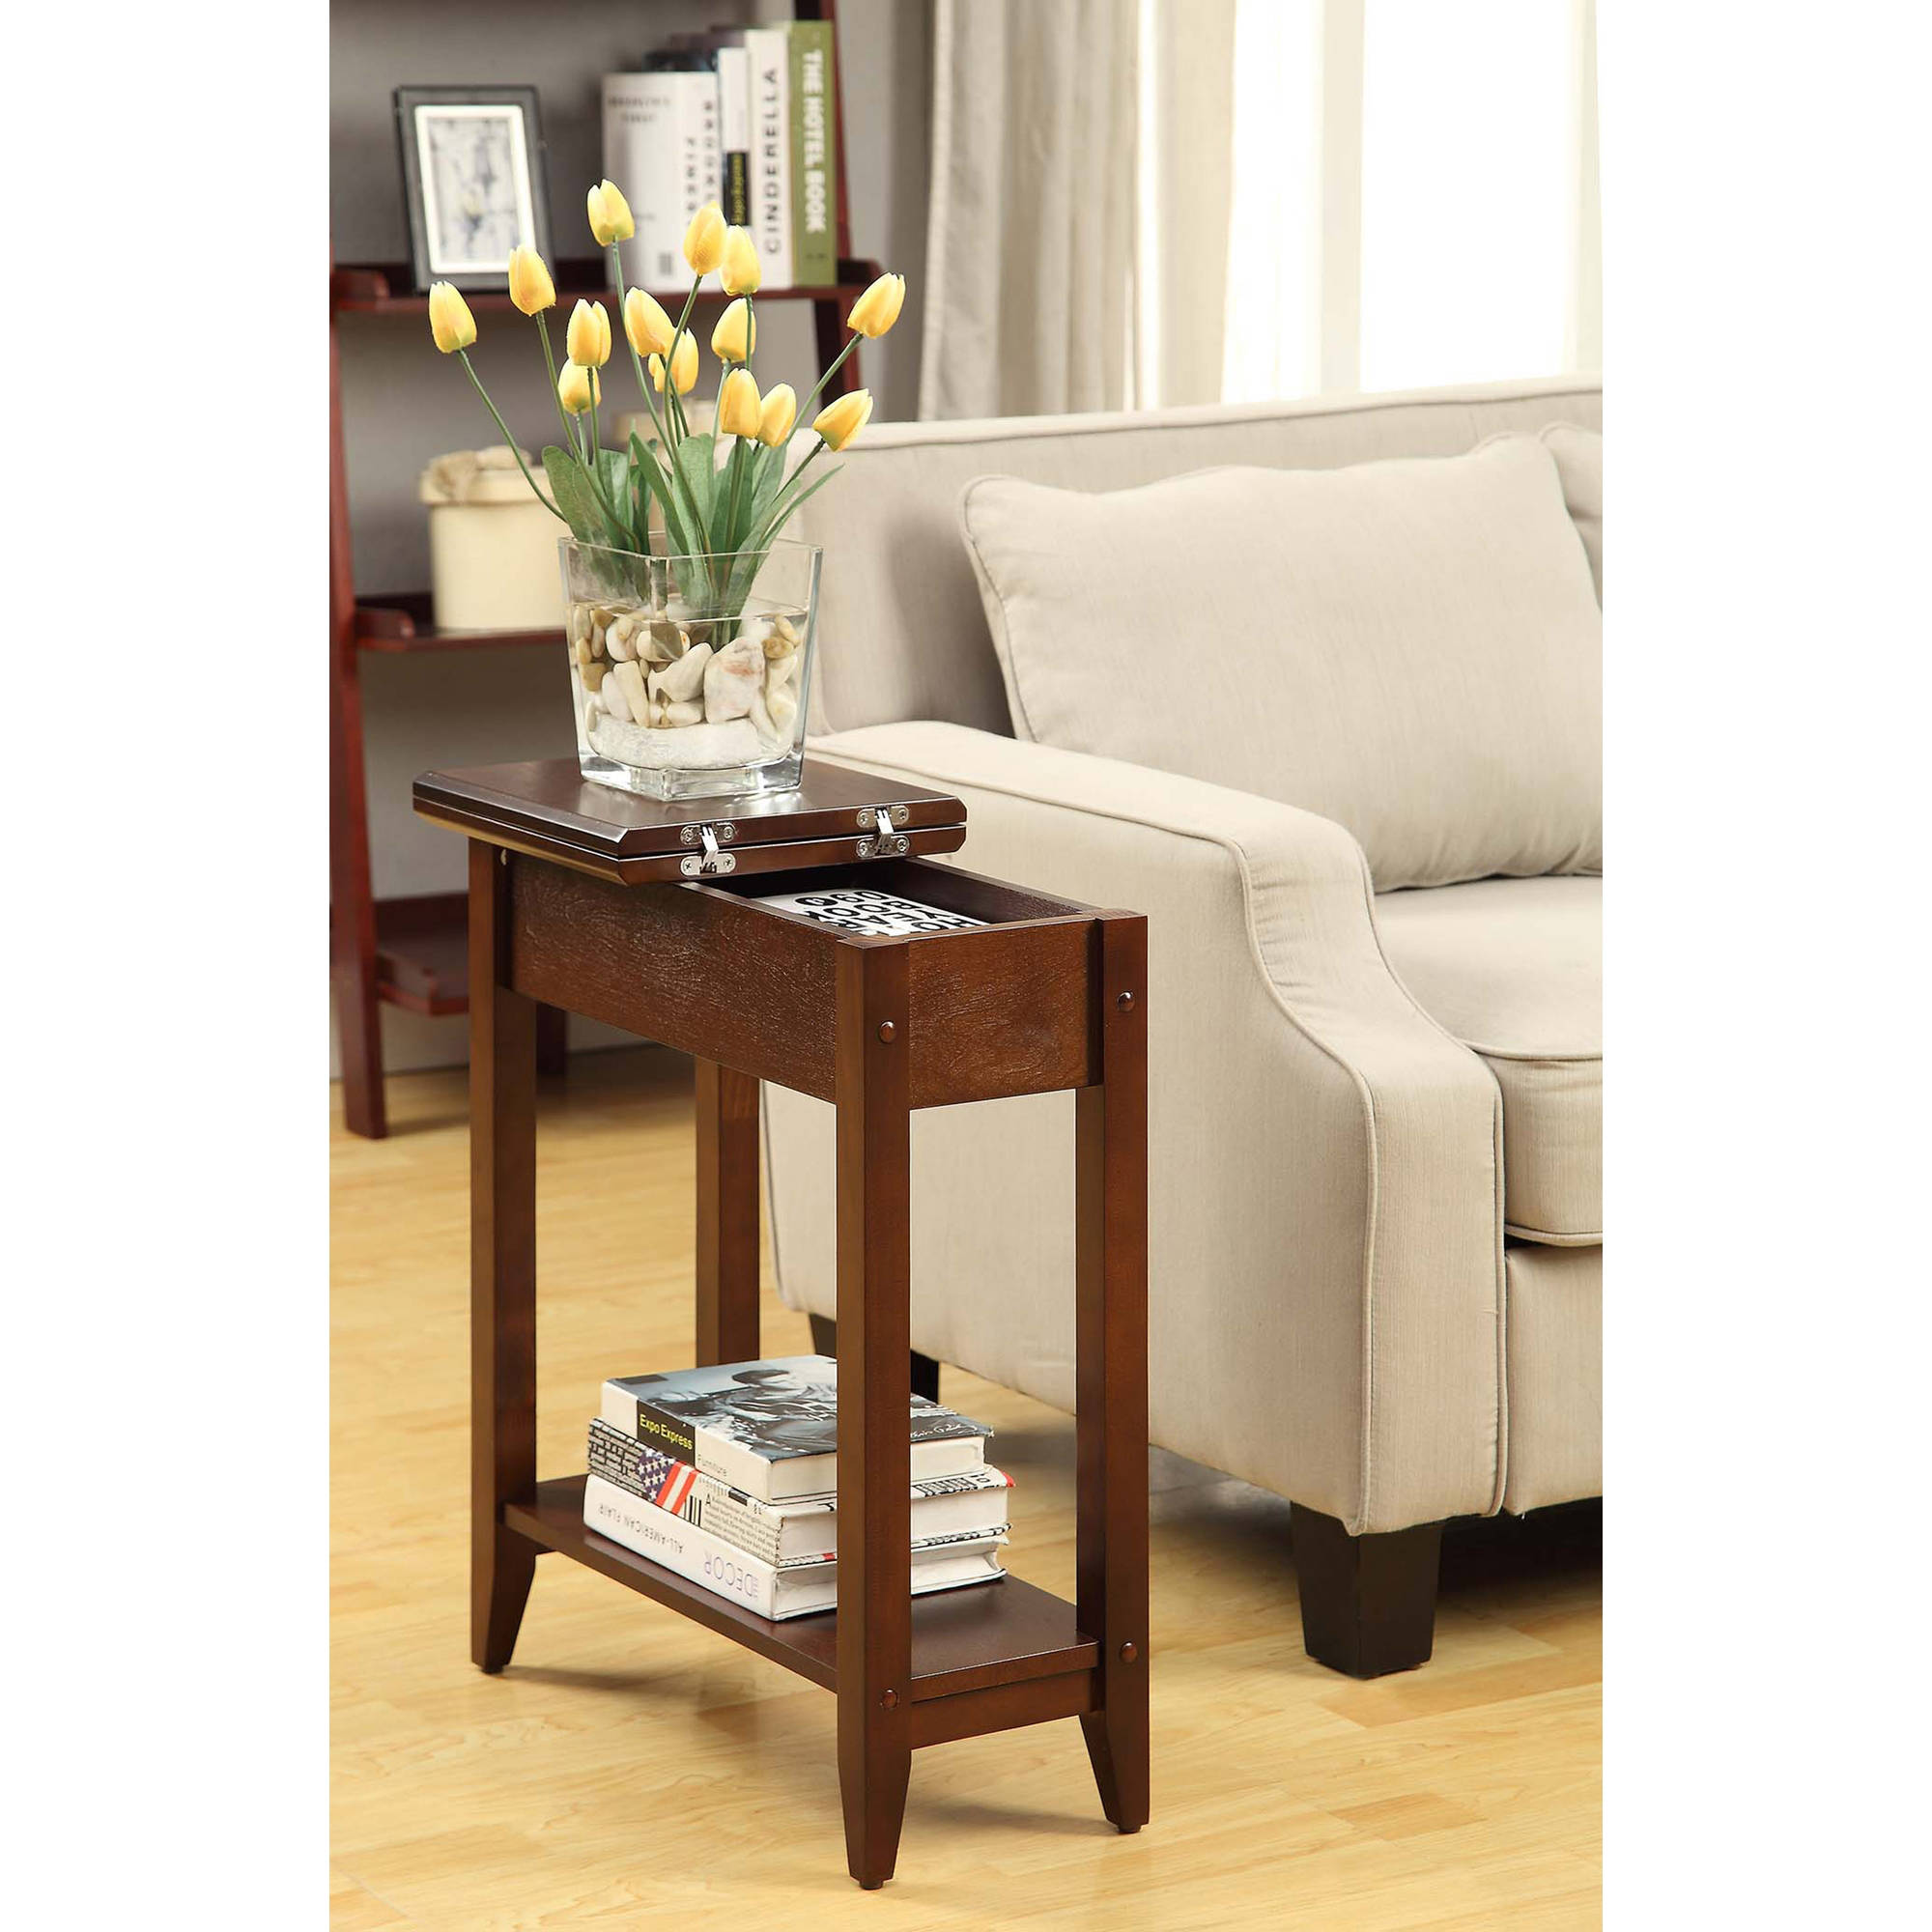 American Heritage Flip Top Tall Side Table, Multiple Colors